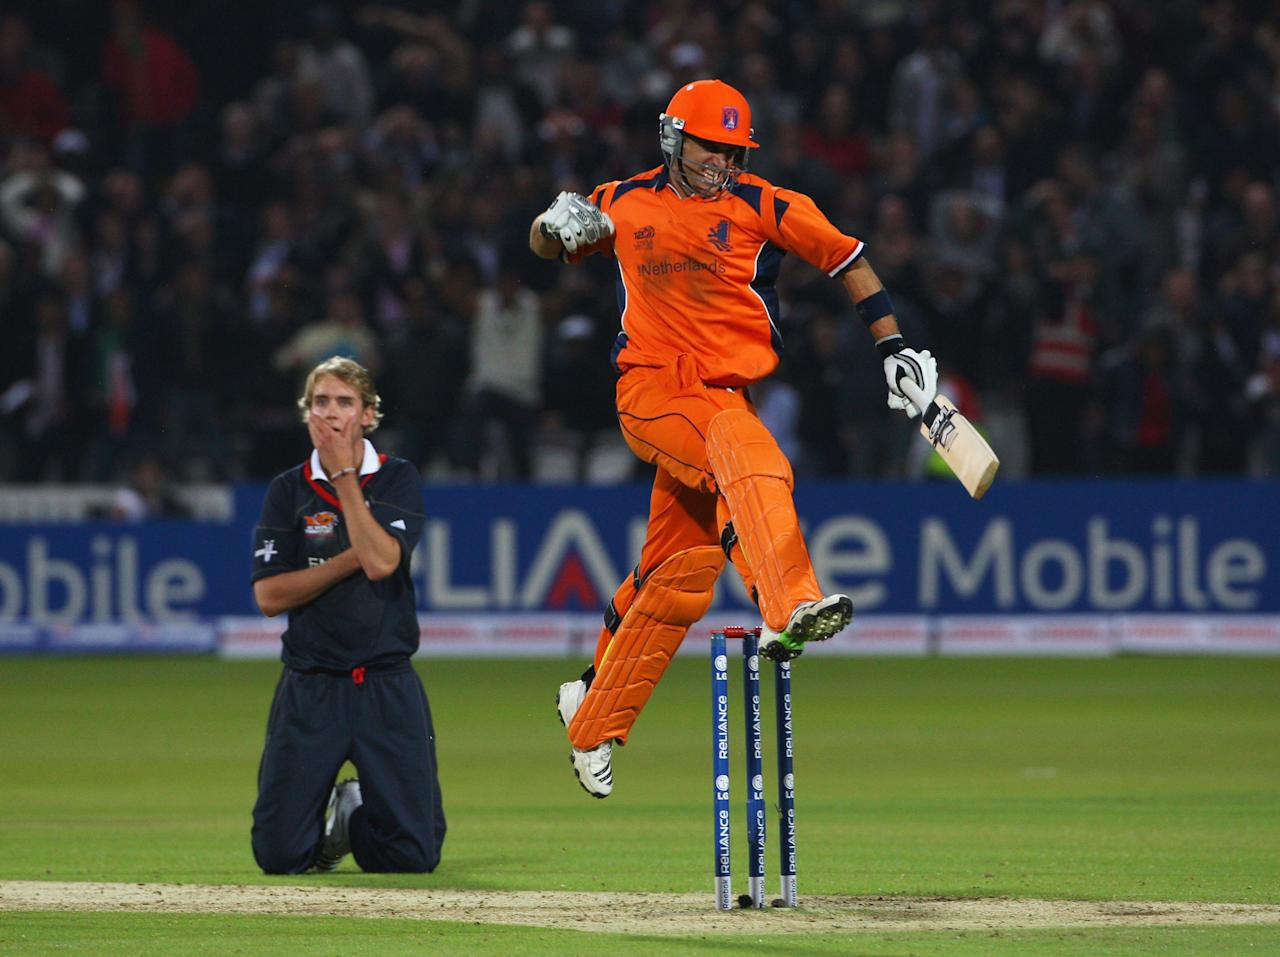 LONDON - JUNE 05:  Ryan ten Doeschate of Netherlands celebrates victory as Stuart Broad of England looks on during the ICC World Twenty20 Group B match between England and the Netherlands at Lord's on June 5, 2009 in London, England.  (Photo by Tom Shaw/Getty Images)